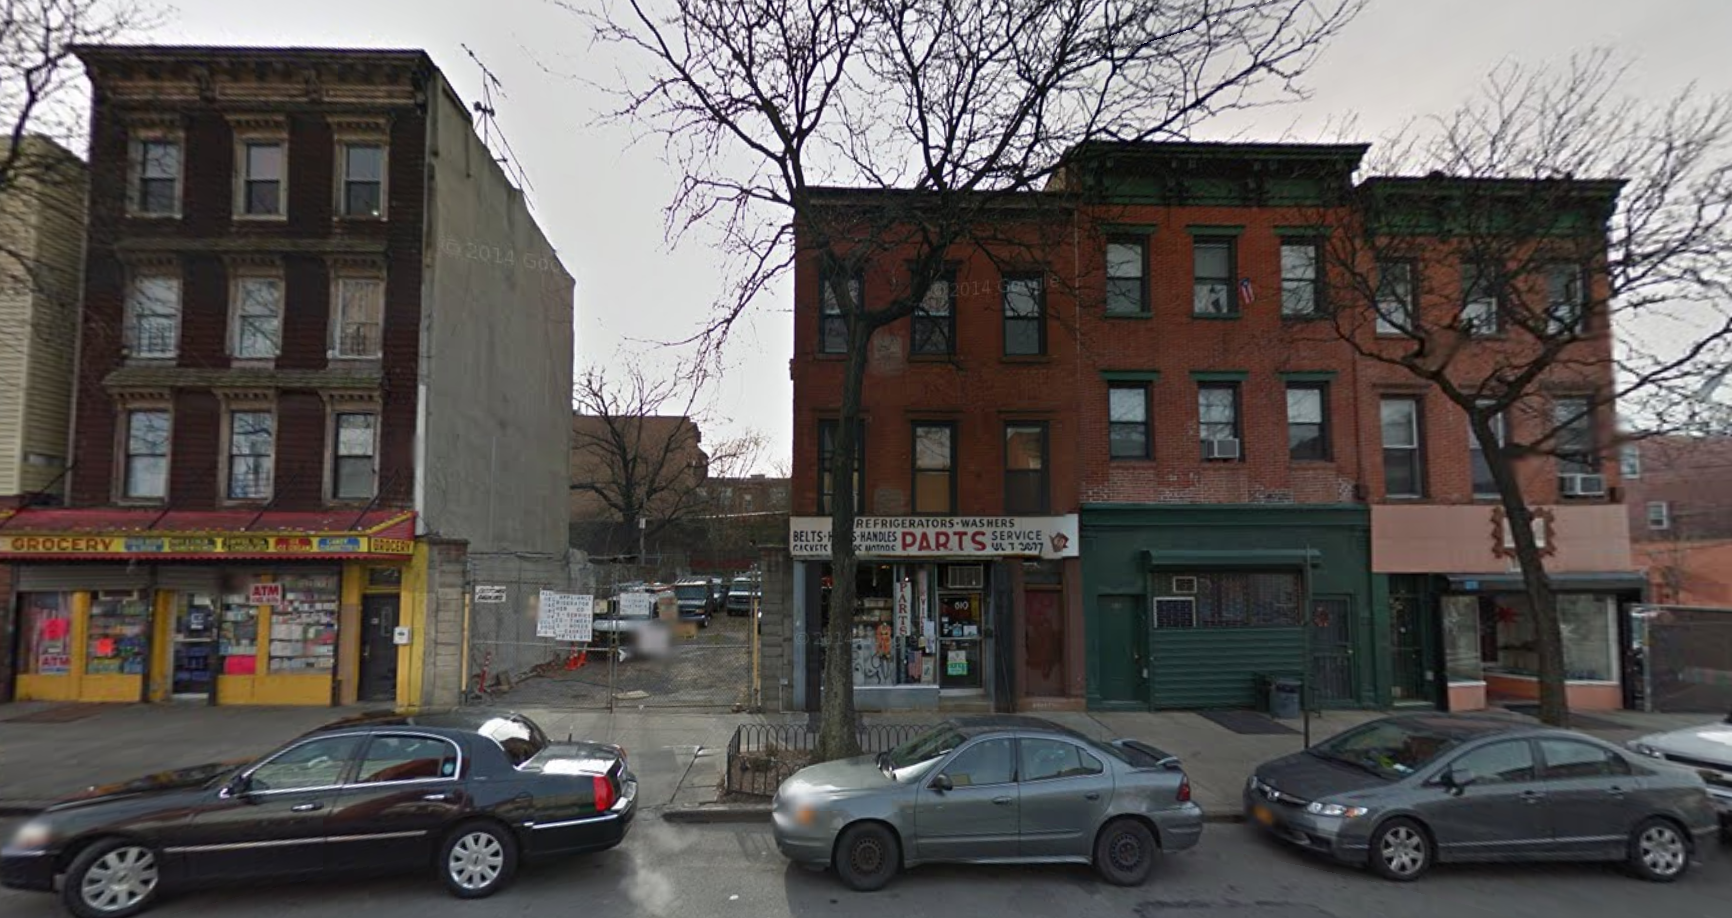 610 Myrtle Avenue, image via Google Maps